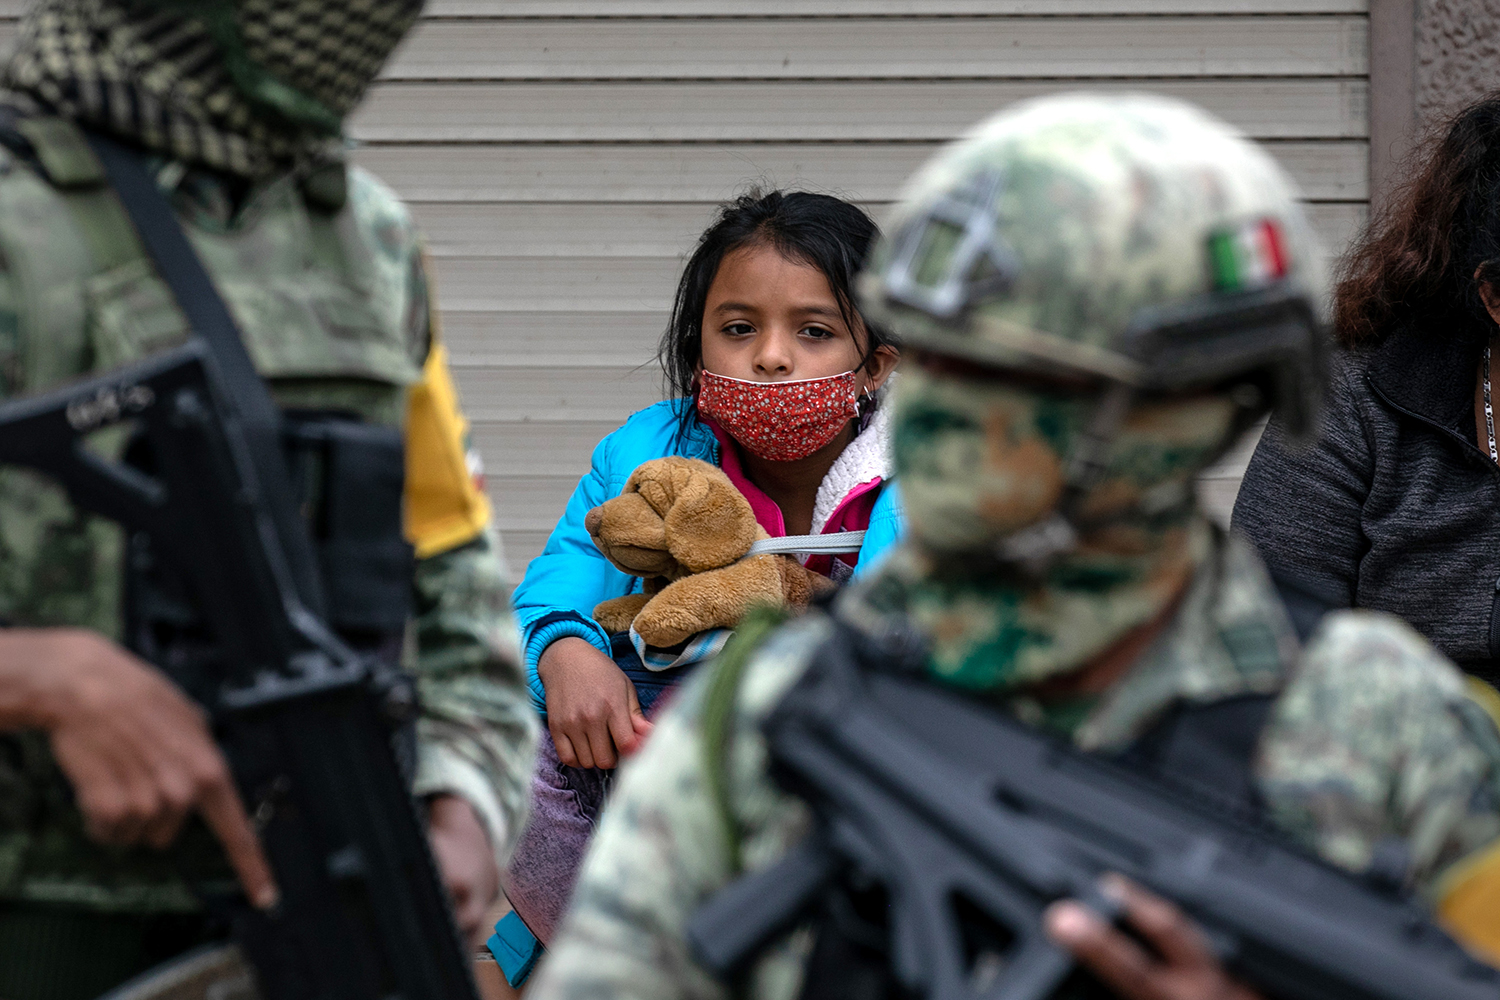 As Mexican military police stand guard, Central American immigrants wait at a camp for entry into the United States in Matamoros, Mexico, on Feb. 22. Immigration authorities have begun to allow some asylum seekers with active cases into the United States. John Moore/Getty Images